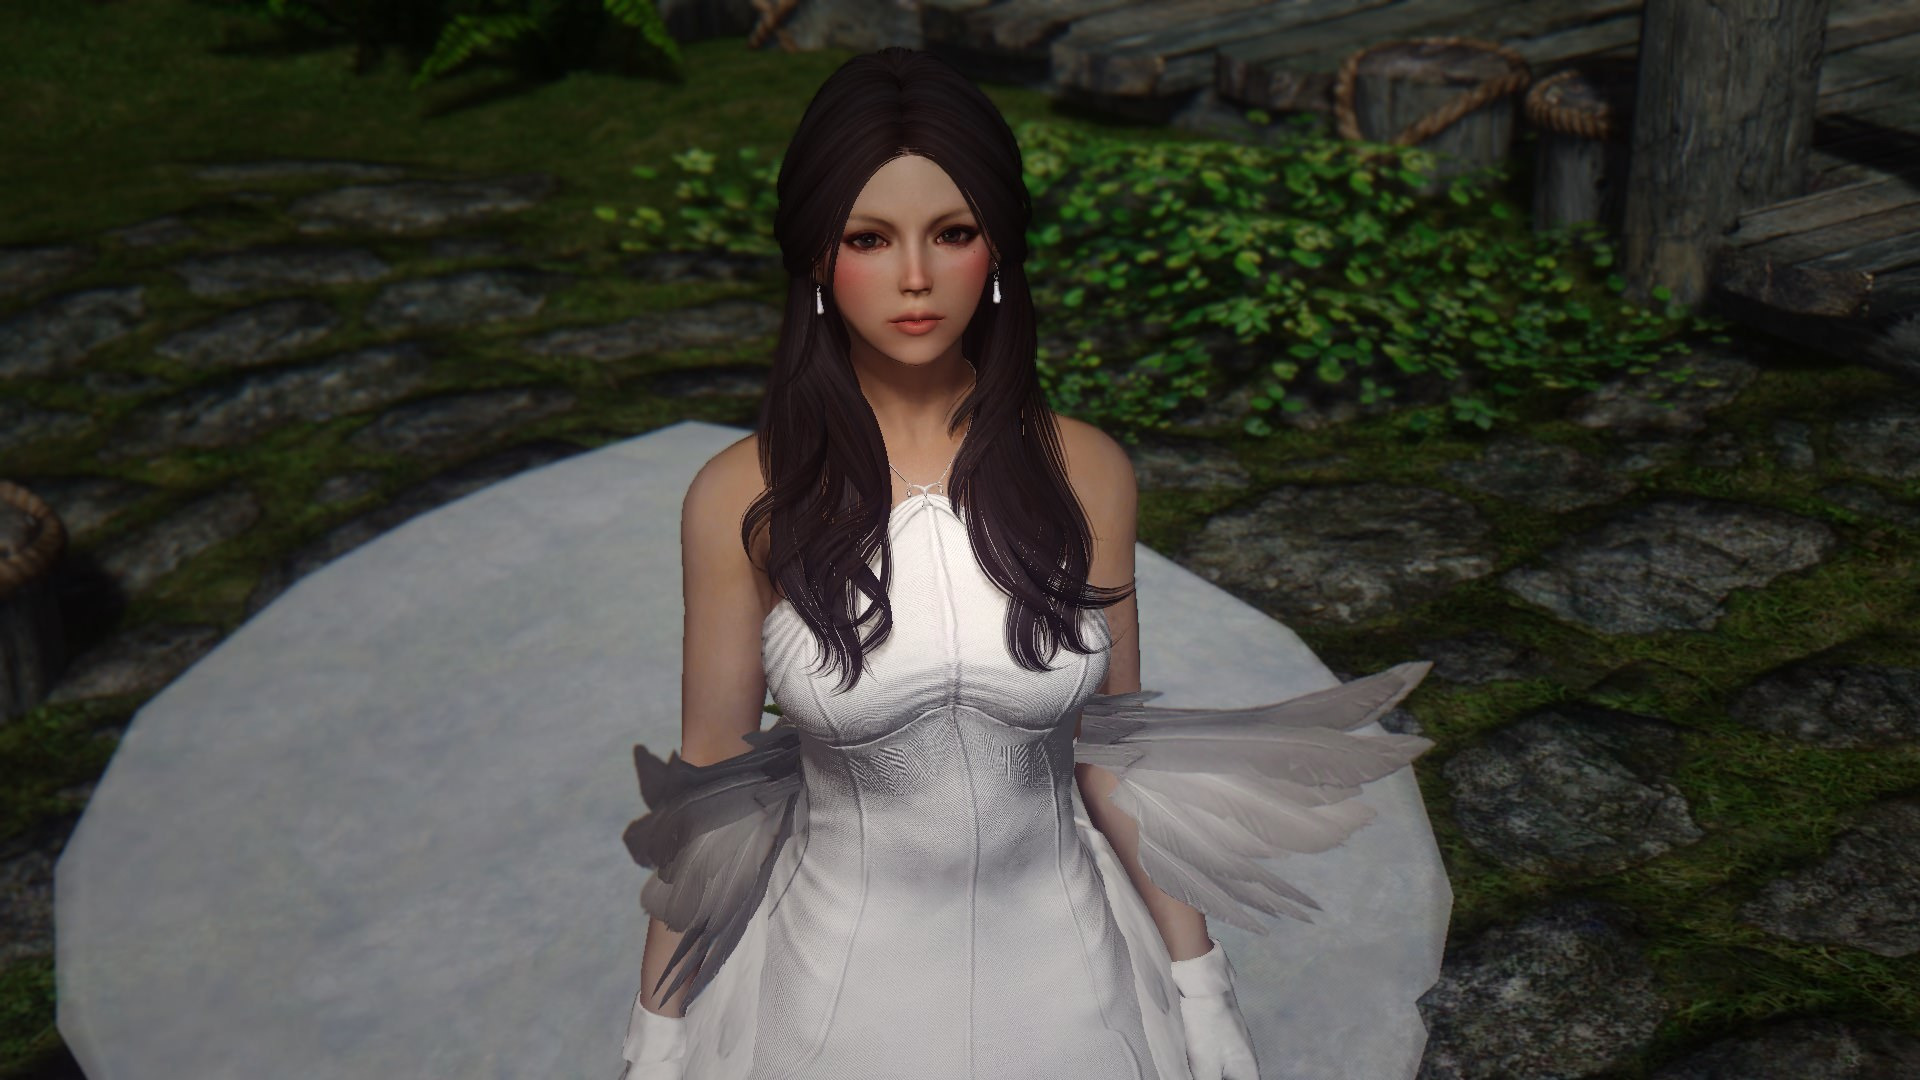 Yuna_wedding_costume_UNPB_1.jpg